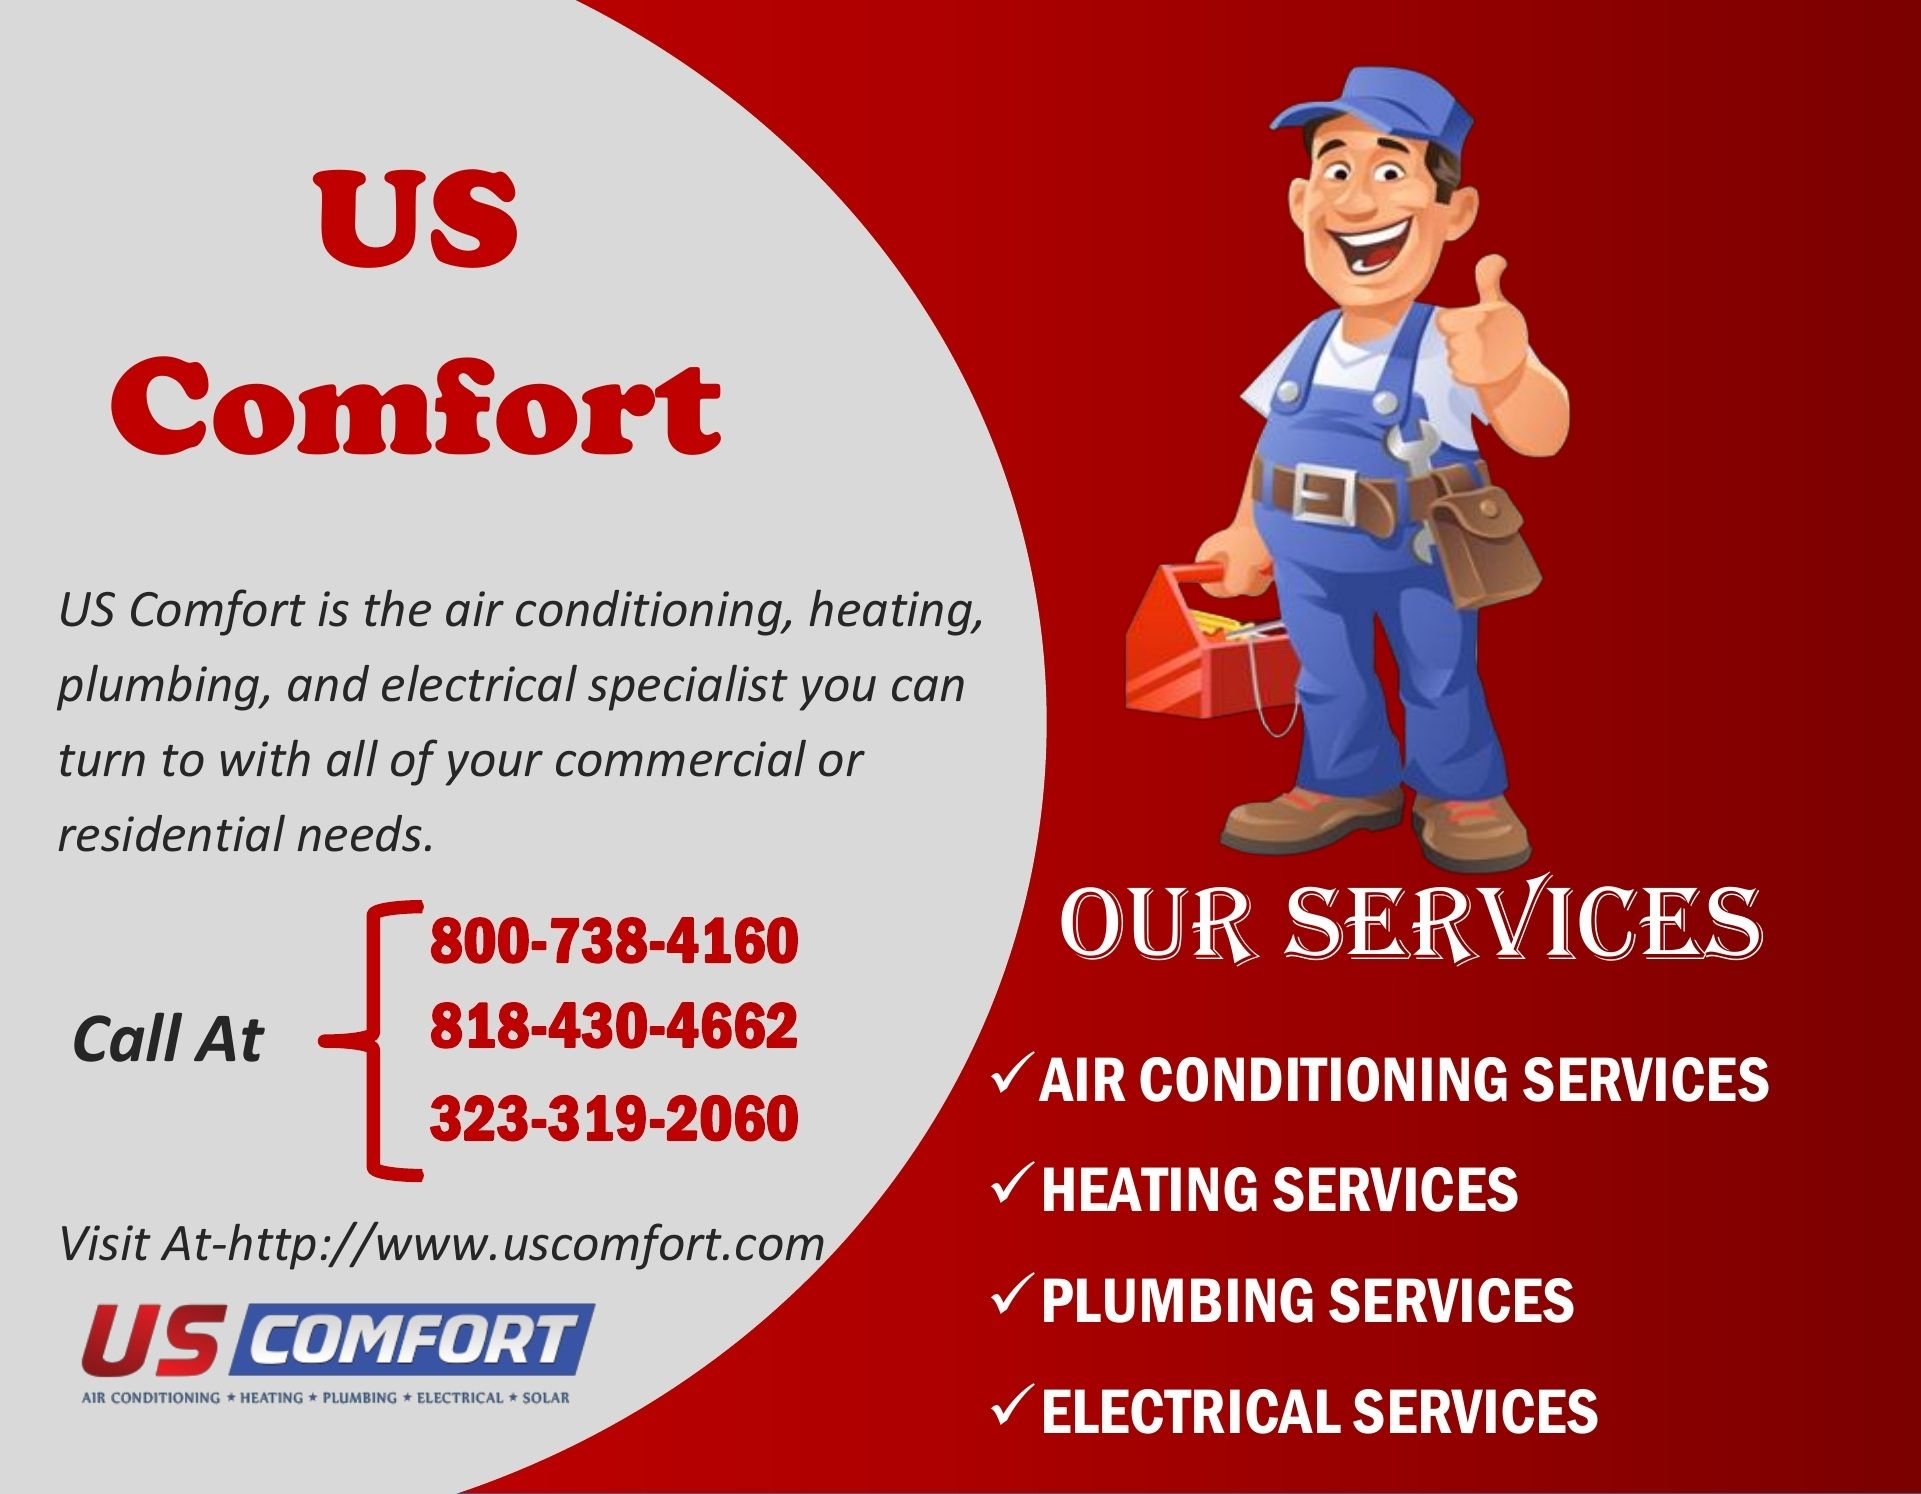 Us Comfort Air Conditioning Services Heating Services Hvac Company